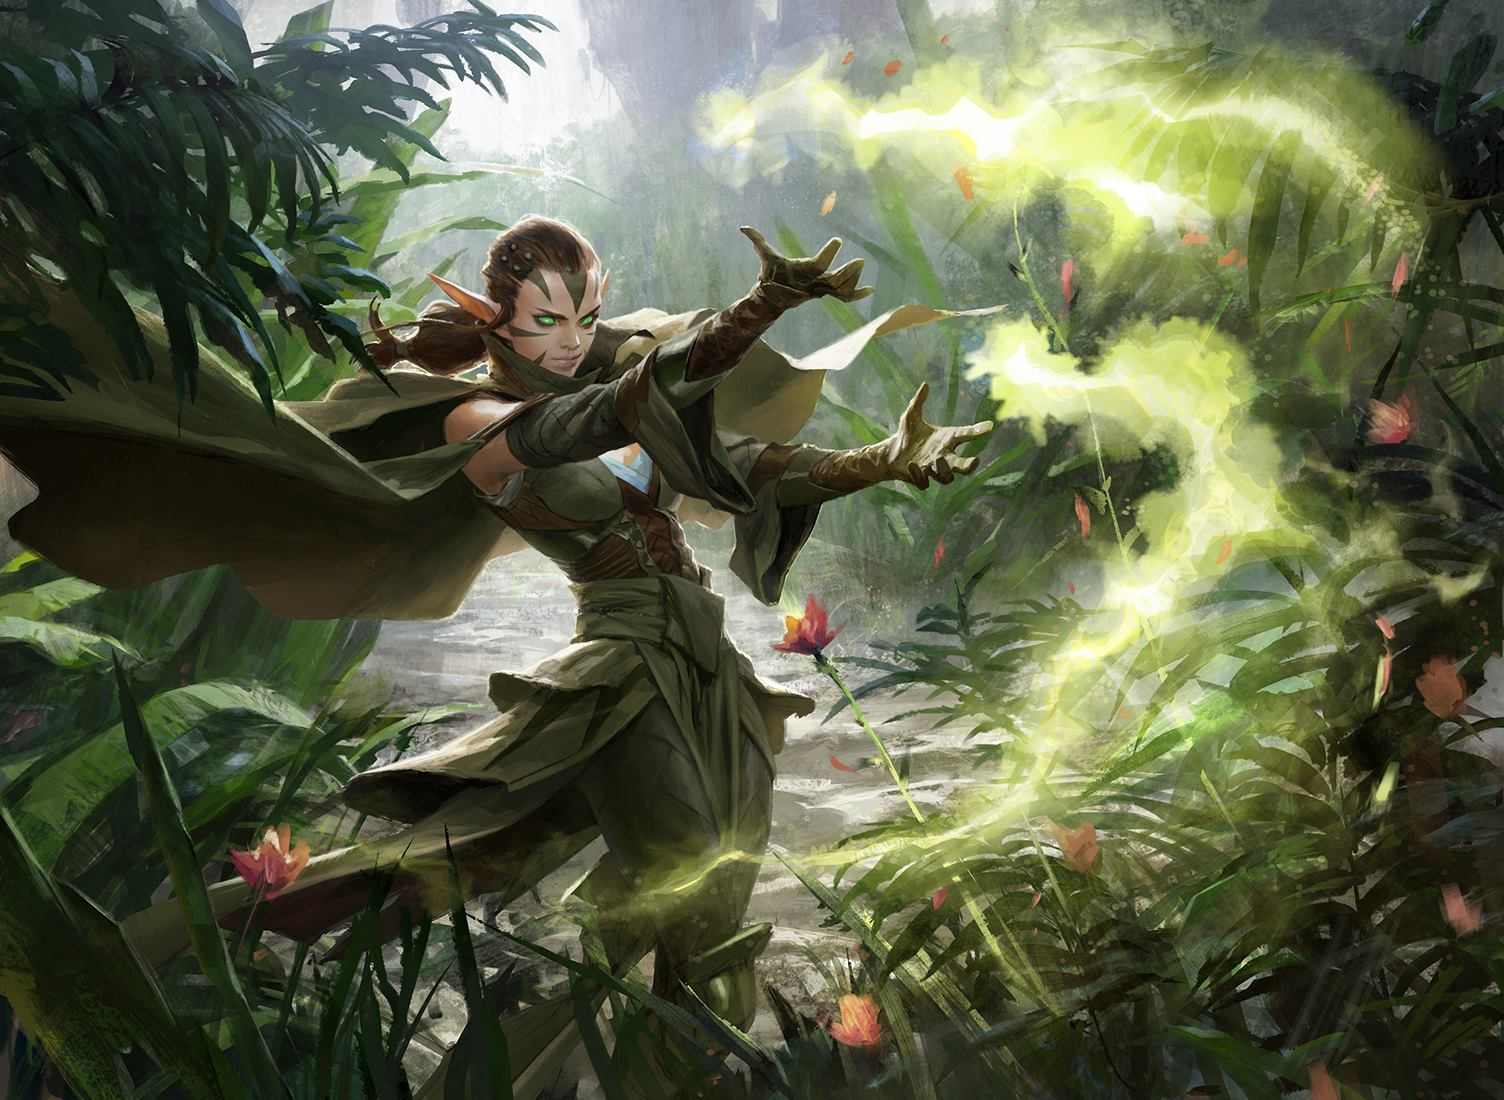 Tasha's Cauldron of Everything: Swarmkeeper Ranger Scuttles By With A Final Print In D&D's Newest Rules Expansion